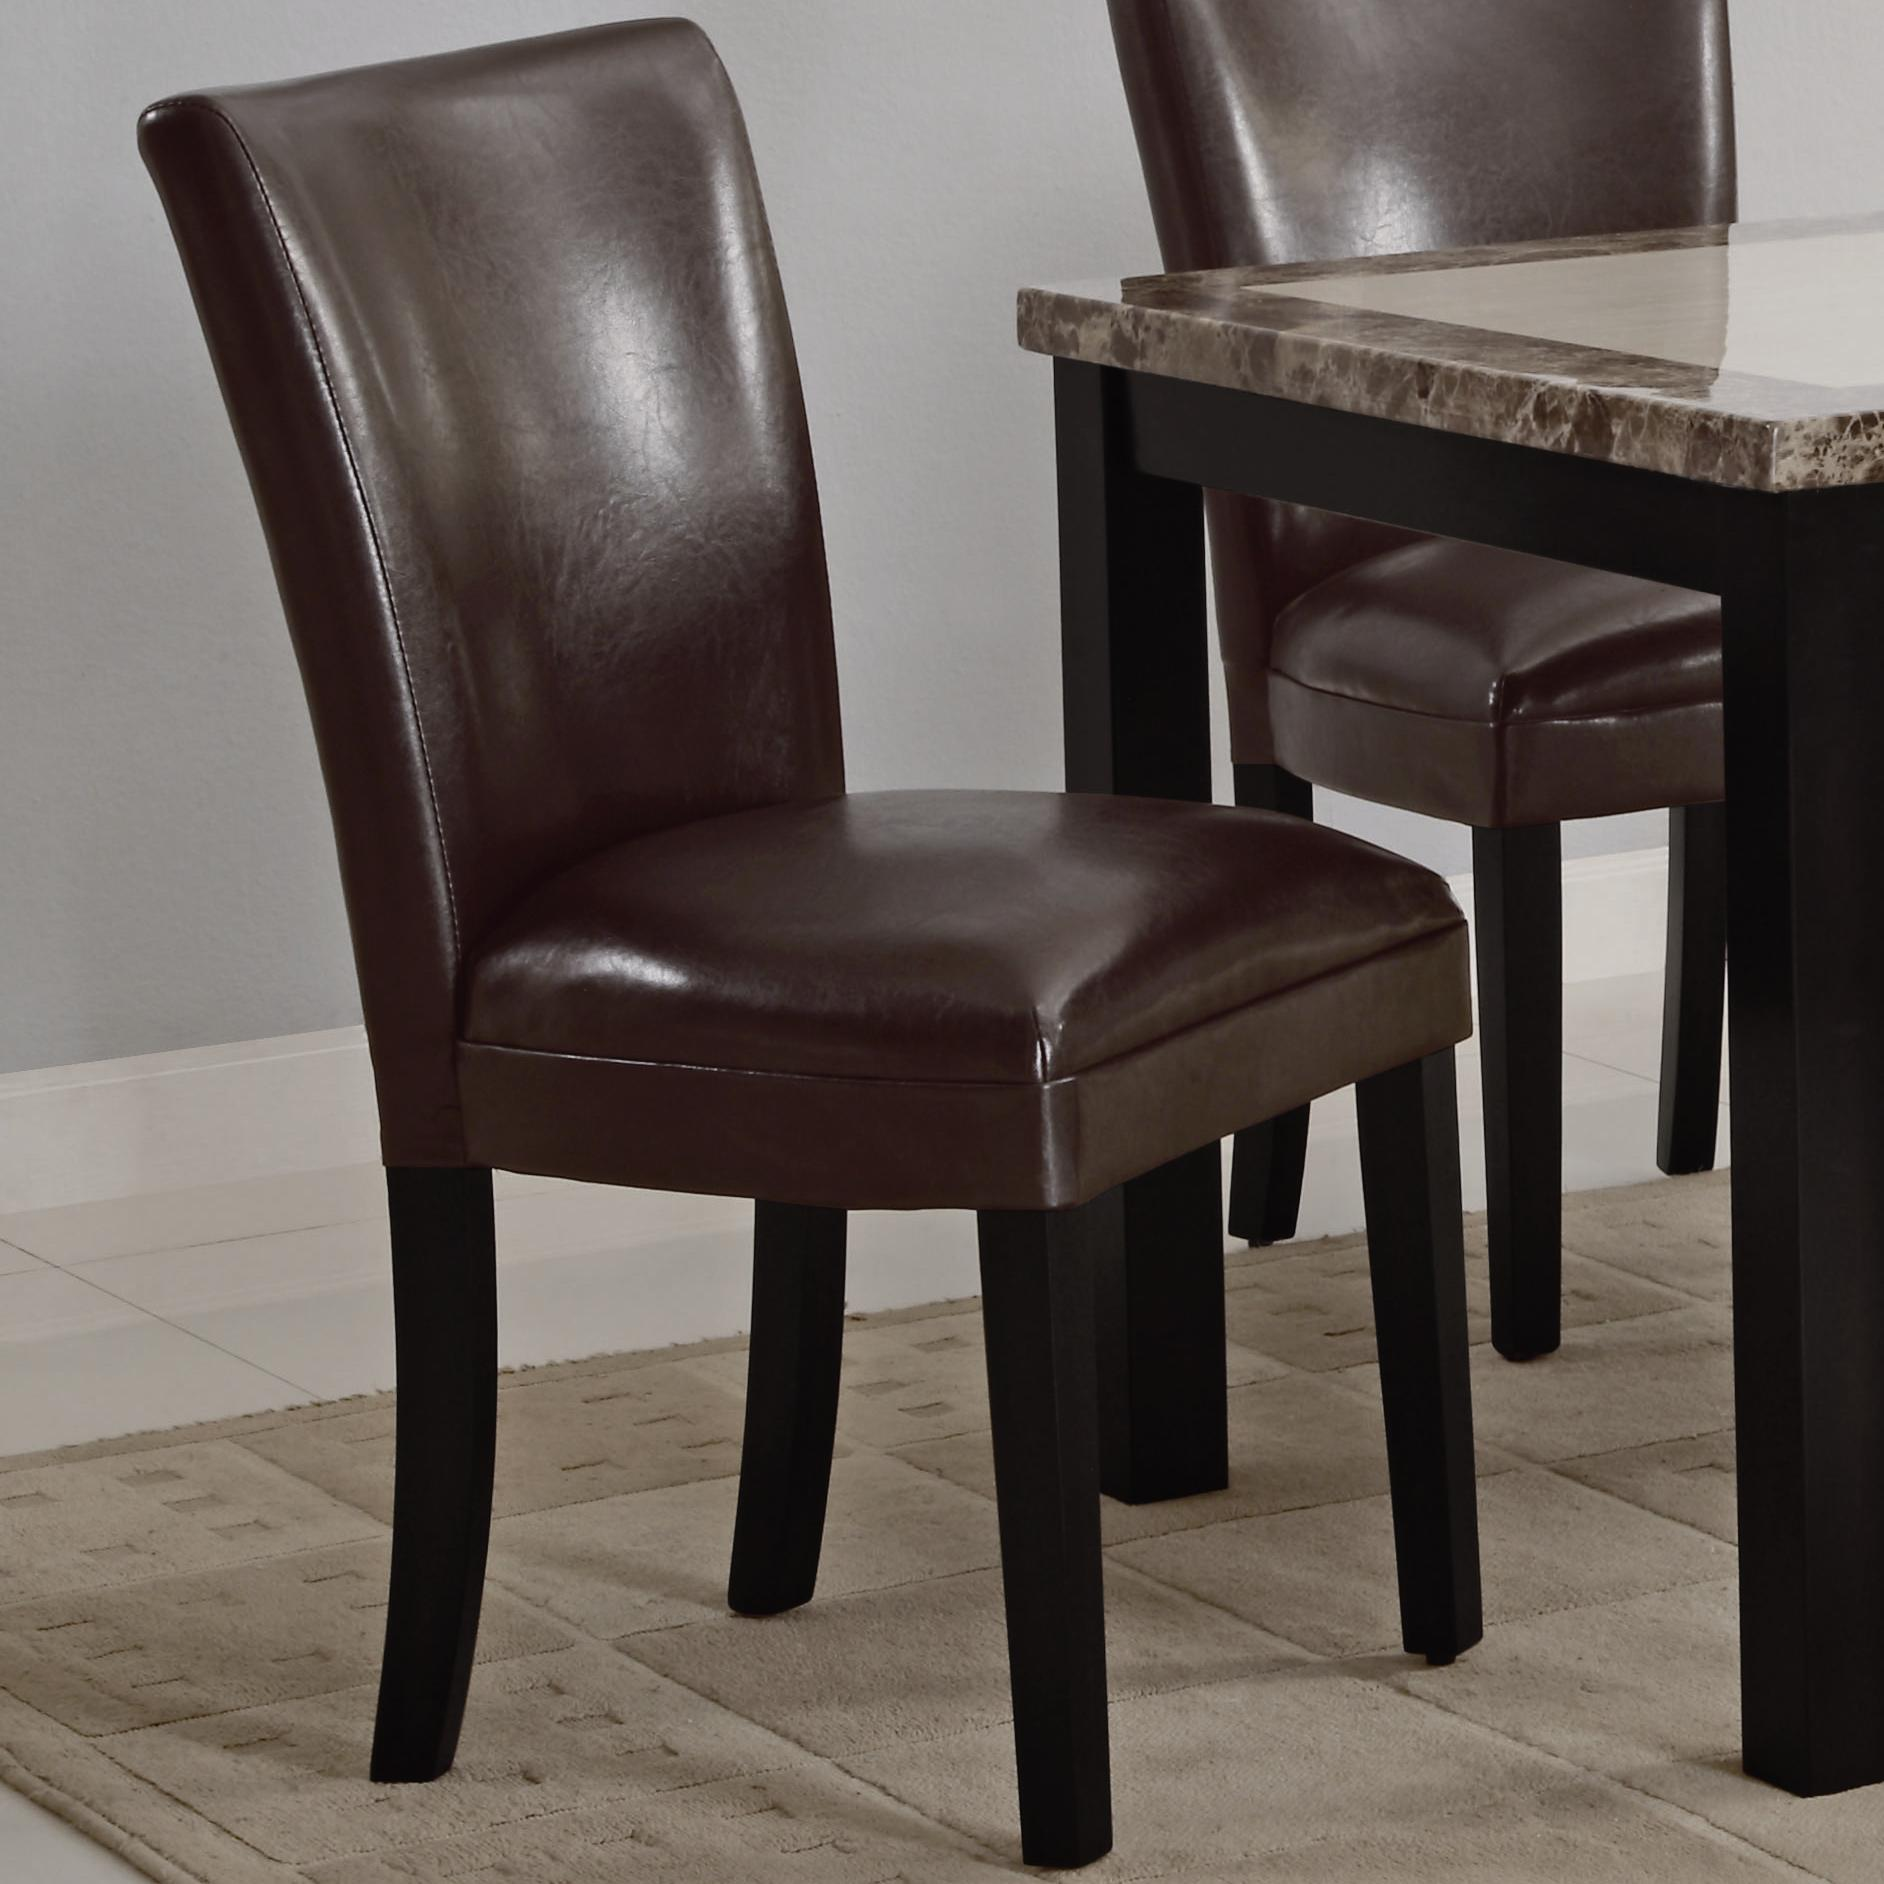 Coaster Carter Upholstered Dining Side Chair - Item Number: 102263